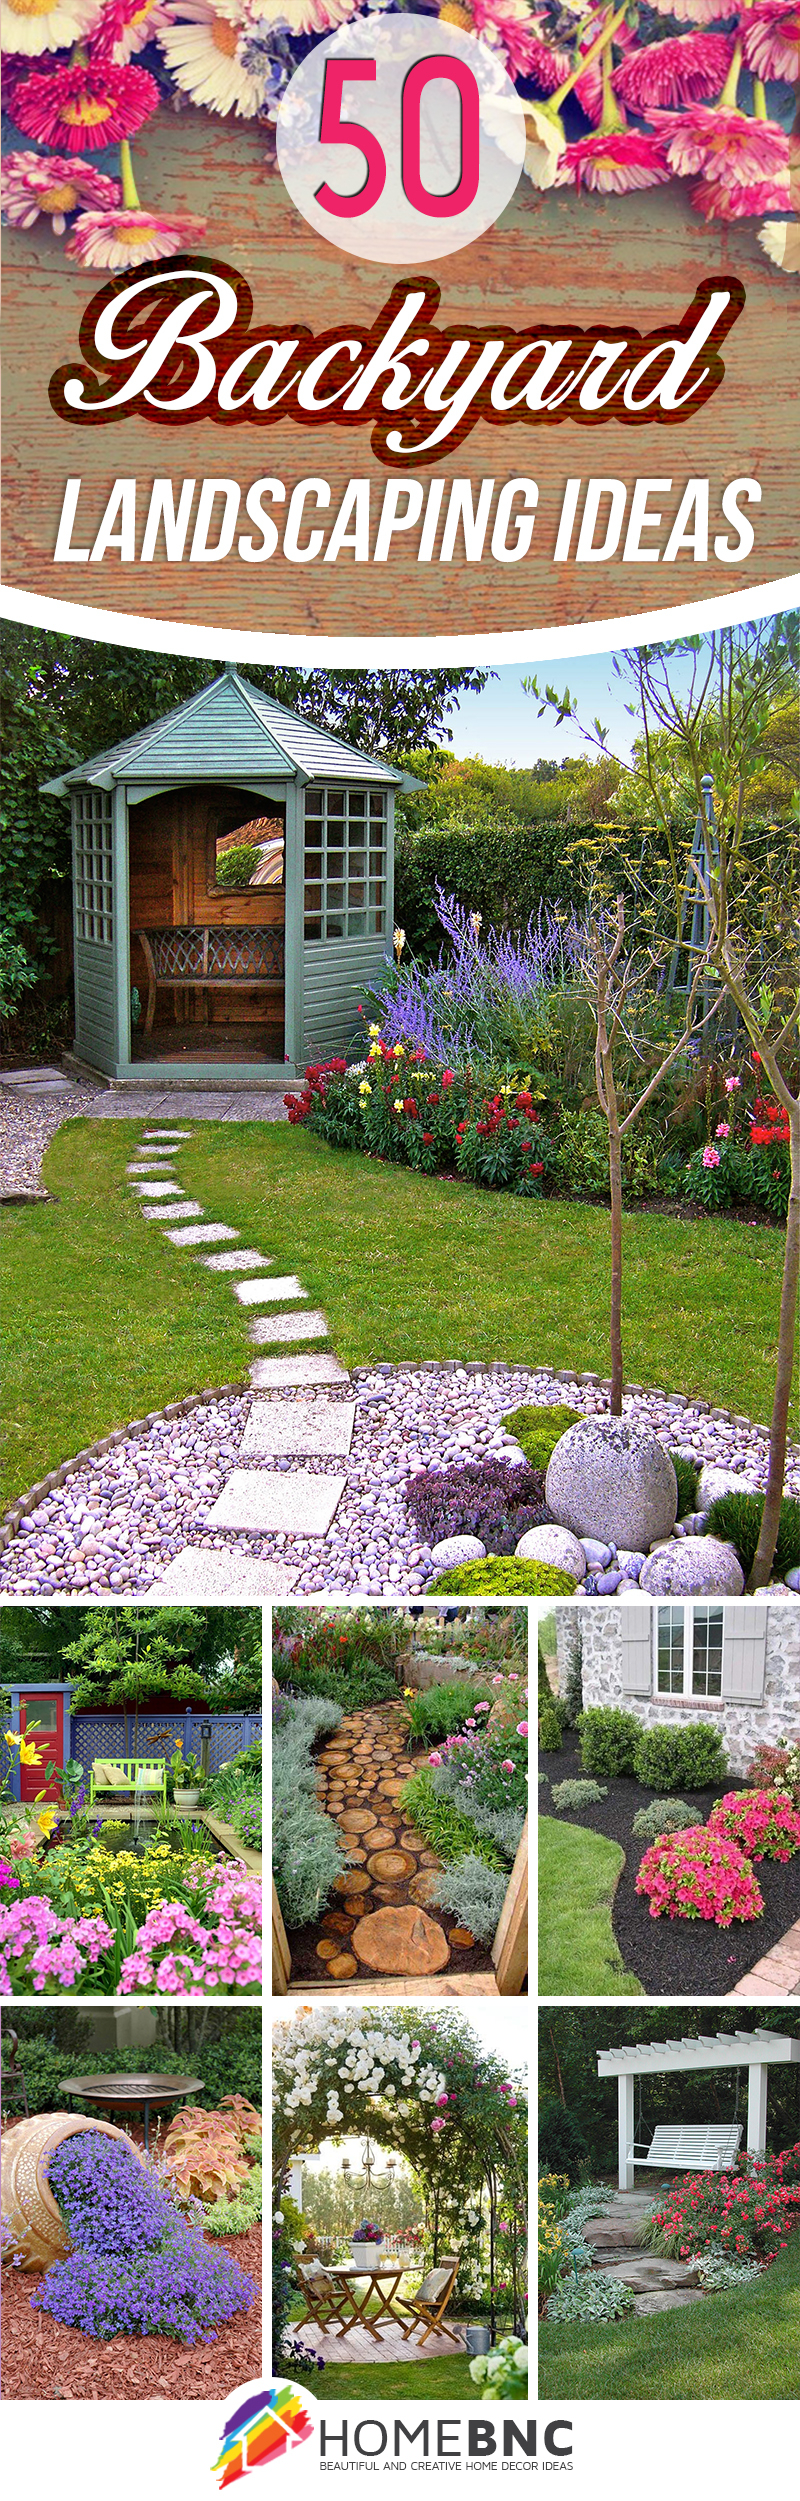 50 Best Backyard Landscaping Ideas And Designs In 2019 intended for 11 Genius Ideas How to Make Landscape Ideas For Backyards